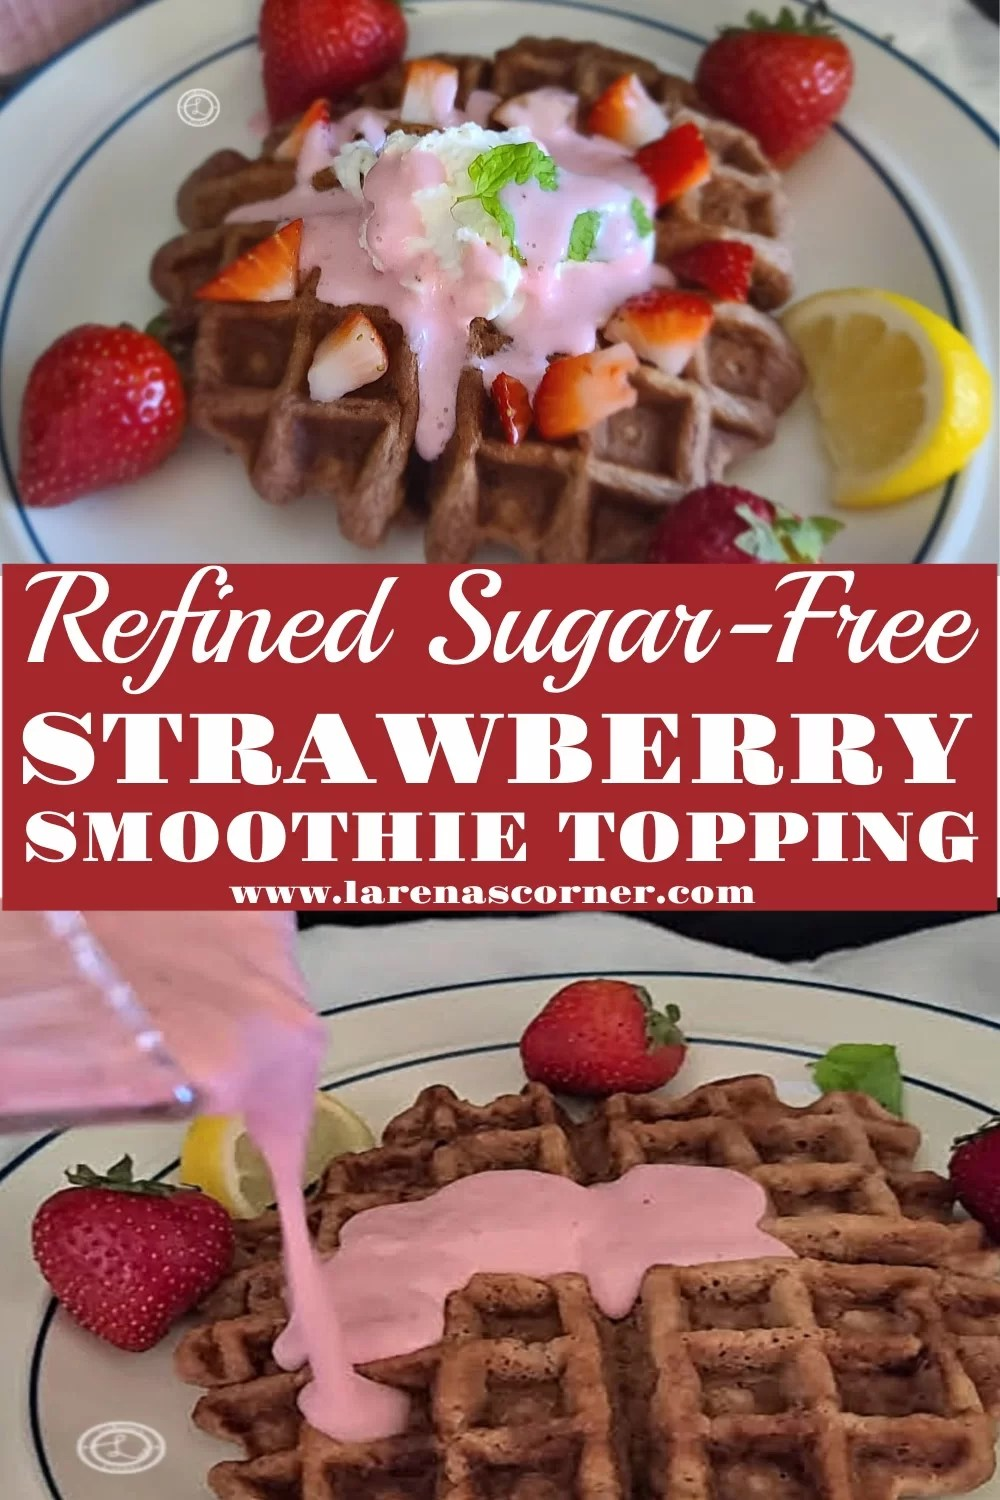 2 pictures. One picture of Strawberry Smoothie Topping being poured on top of a waffle. Second, picture is a close up of a waffle with the topping.